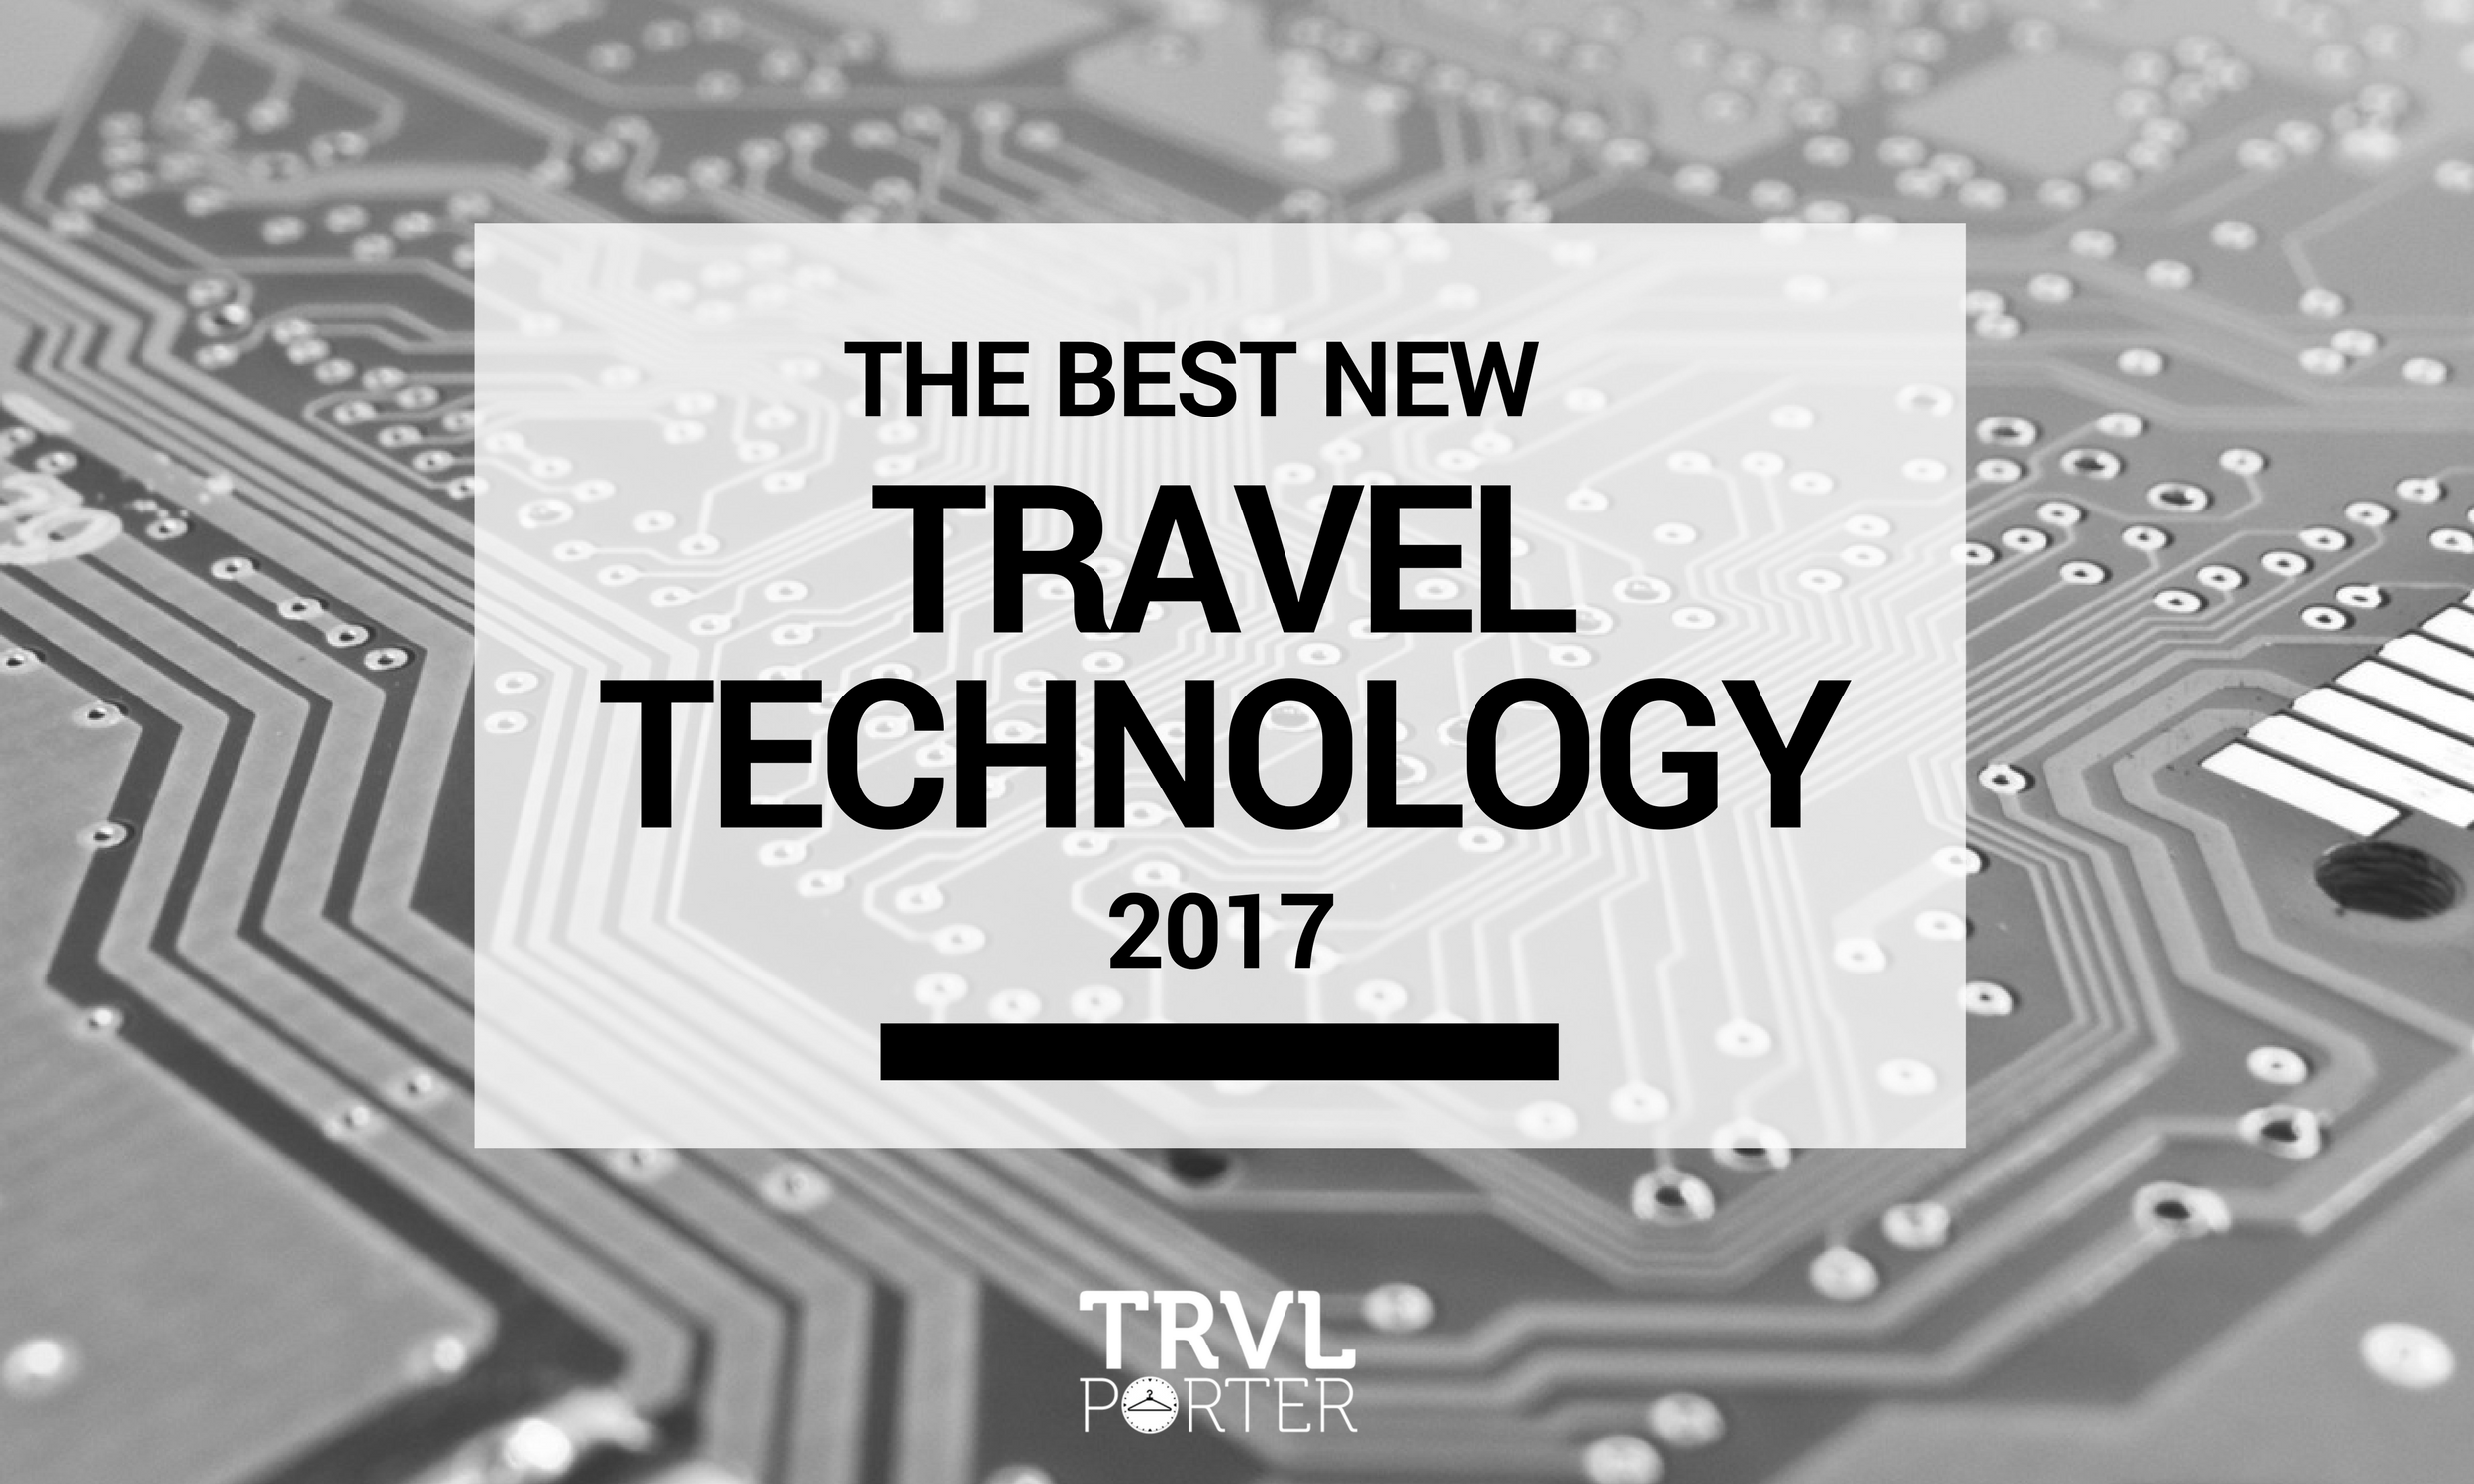 Best-New-Travel-Technology-2017